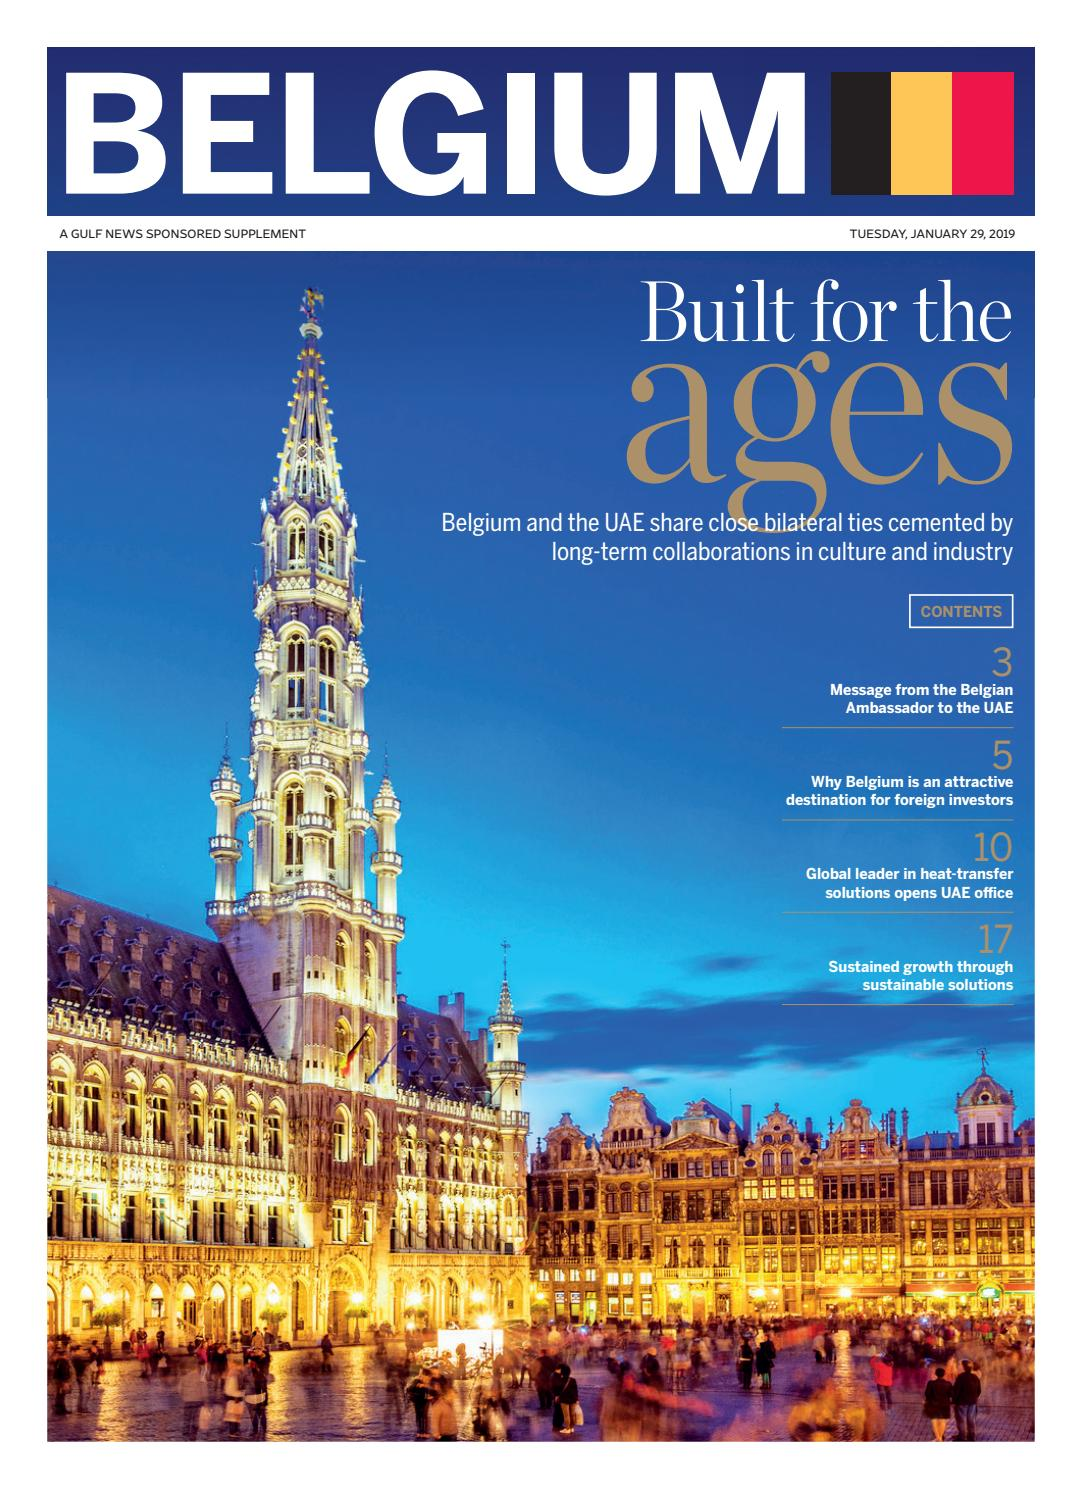 Belgium - A Gulf News Sponsored Supplement by TPME FZE - issuu